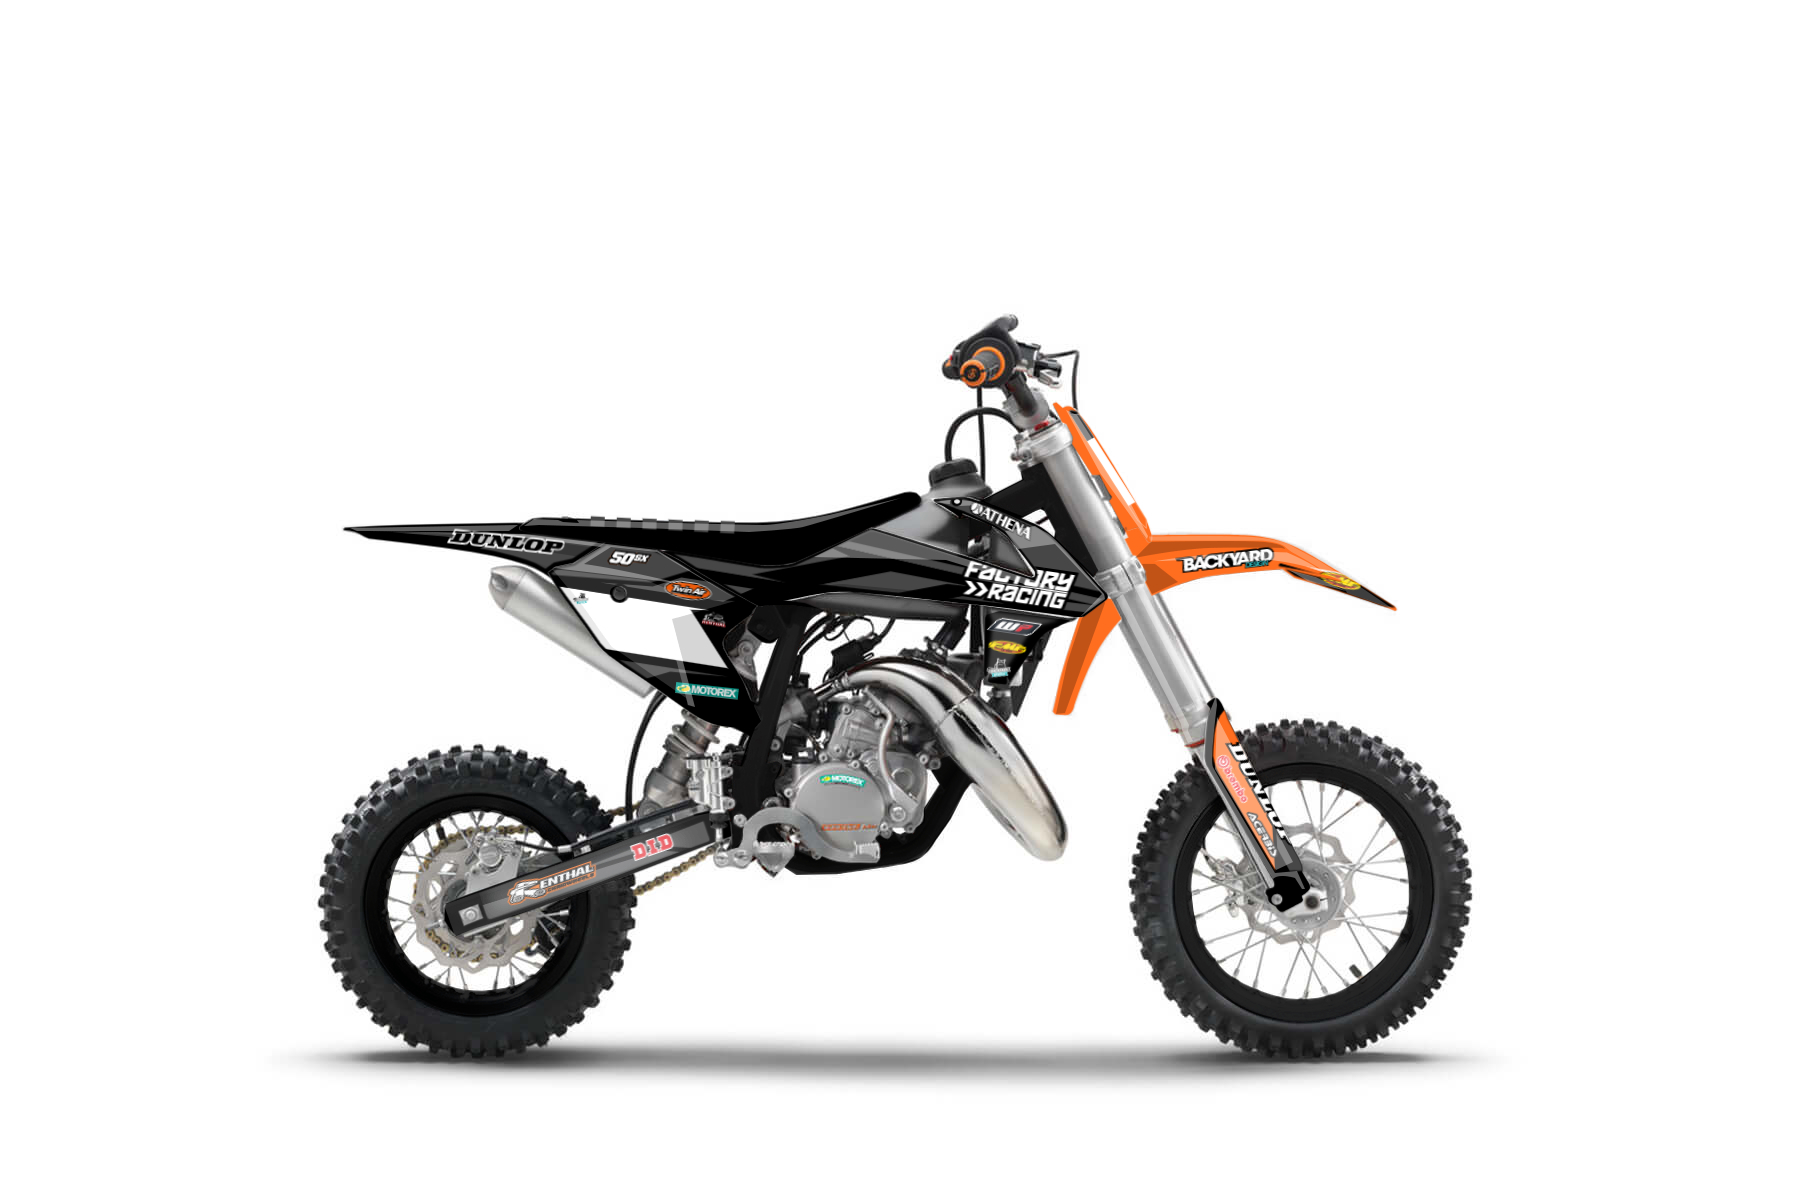 KTM SX 50 MX Graphic Kits  The KTM SX 50 is the perfect bike for all those, that seek an entry into the world of mx racing at a young age. This bike will give you everything you need to get better each session.